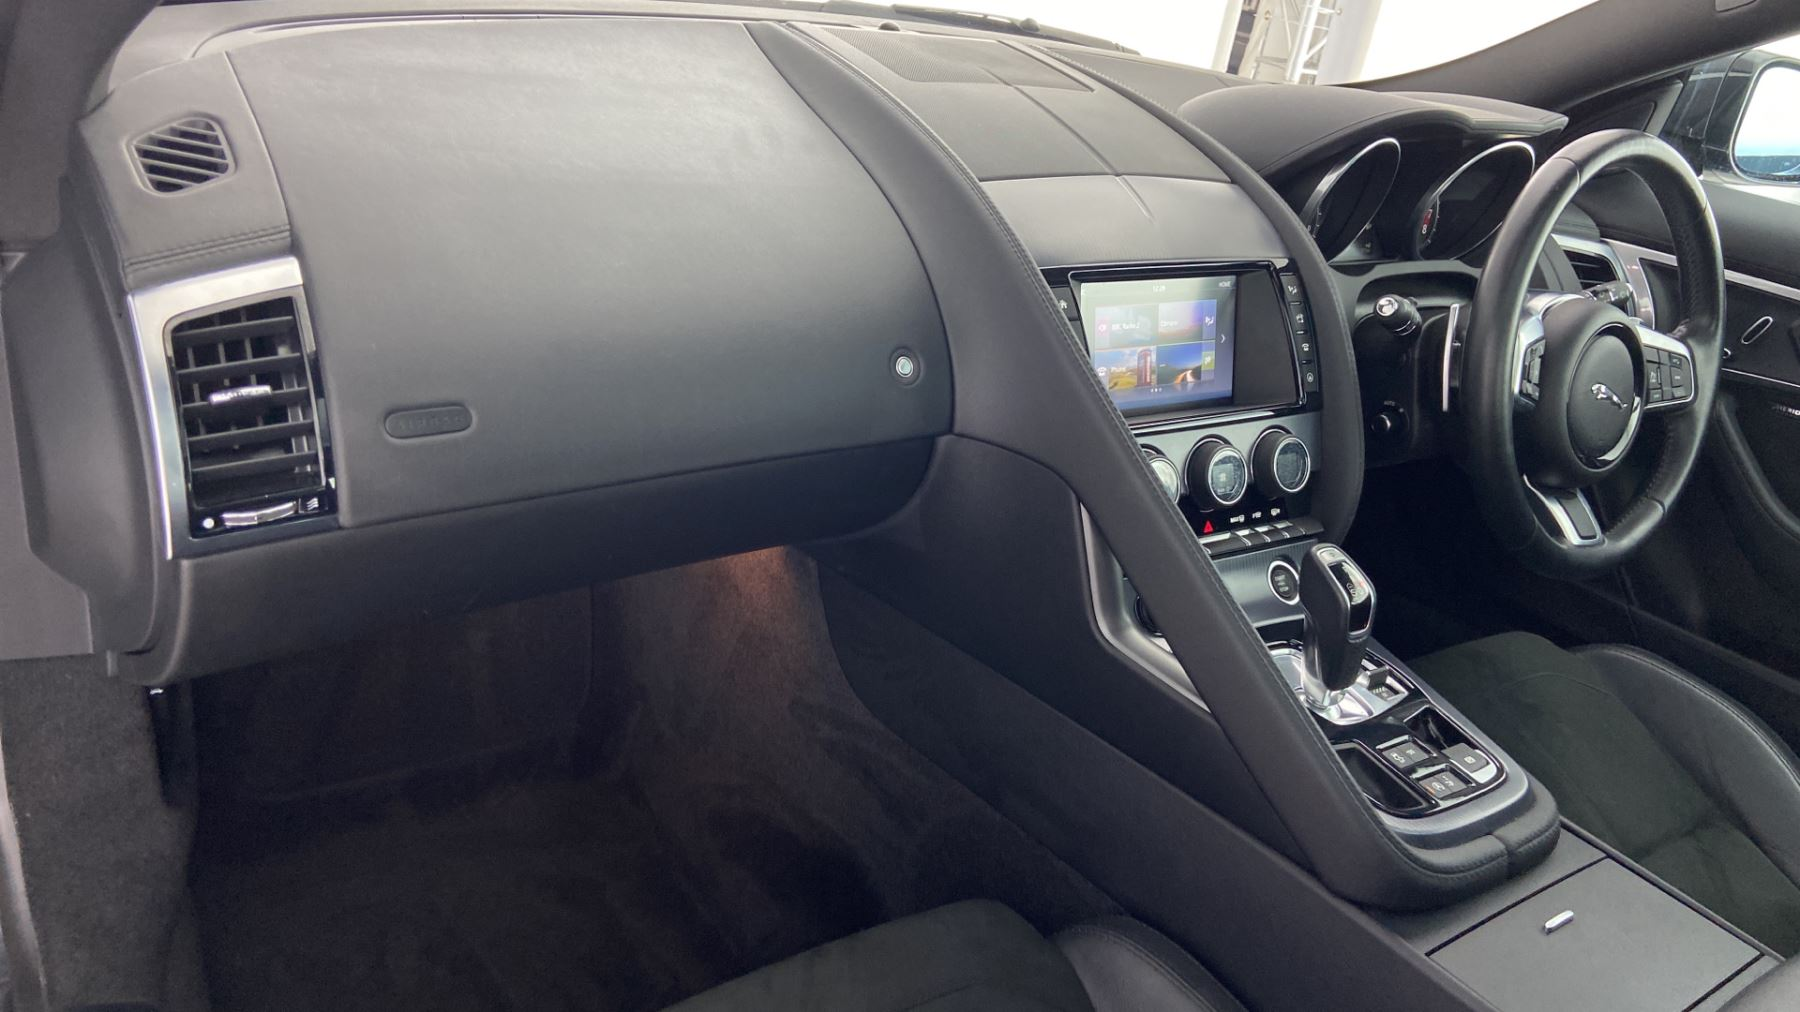 Jaguar F-TYPE 3.0 Supercharged V6 R-Dynamic with Panoramic Sunroof and Meridian Surround Sound image 10